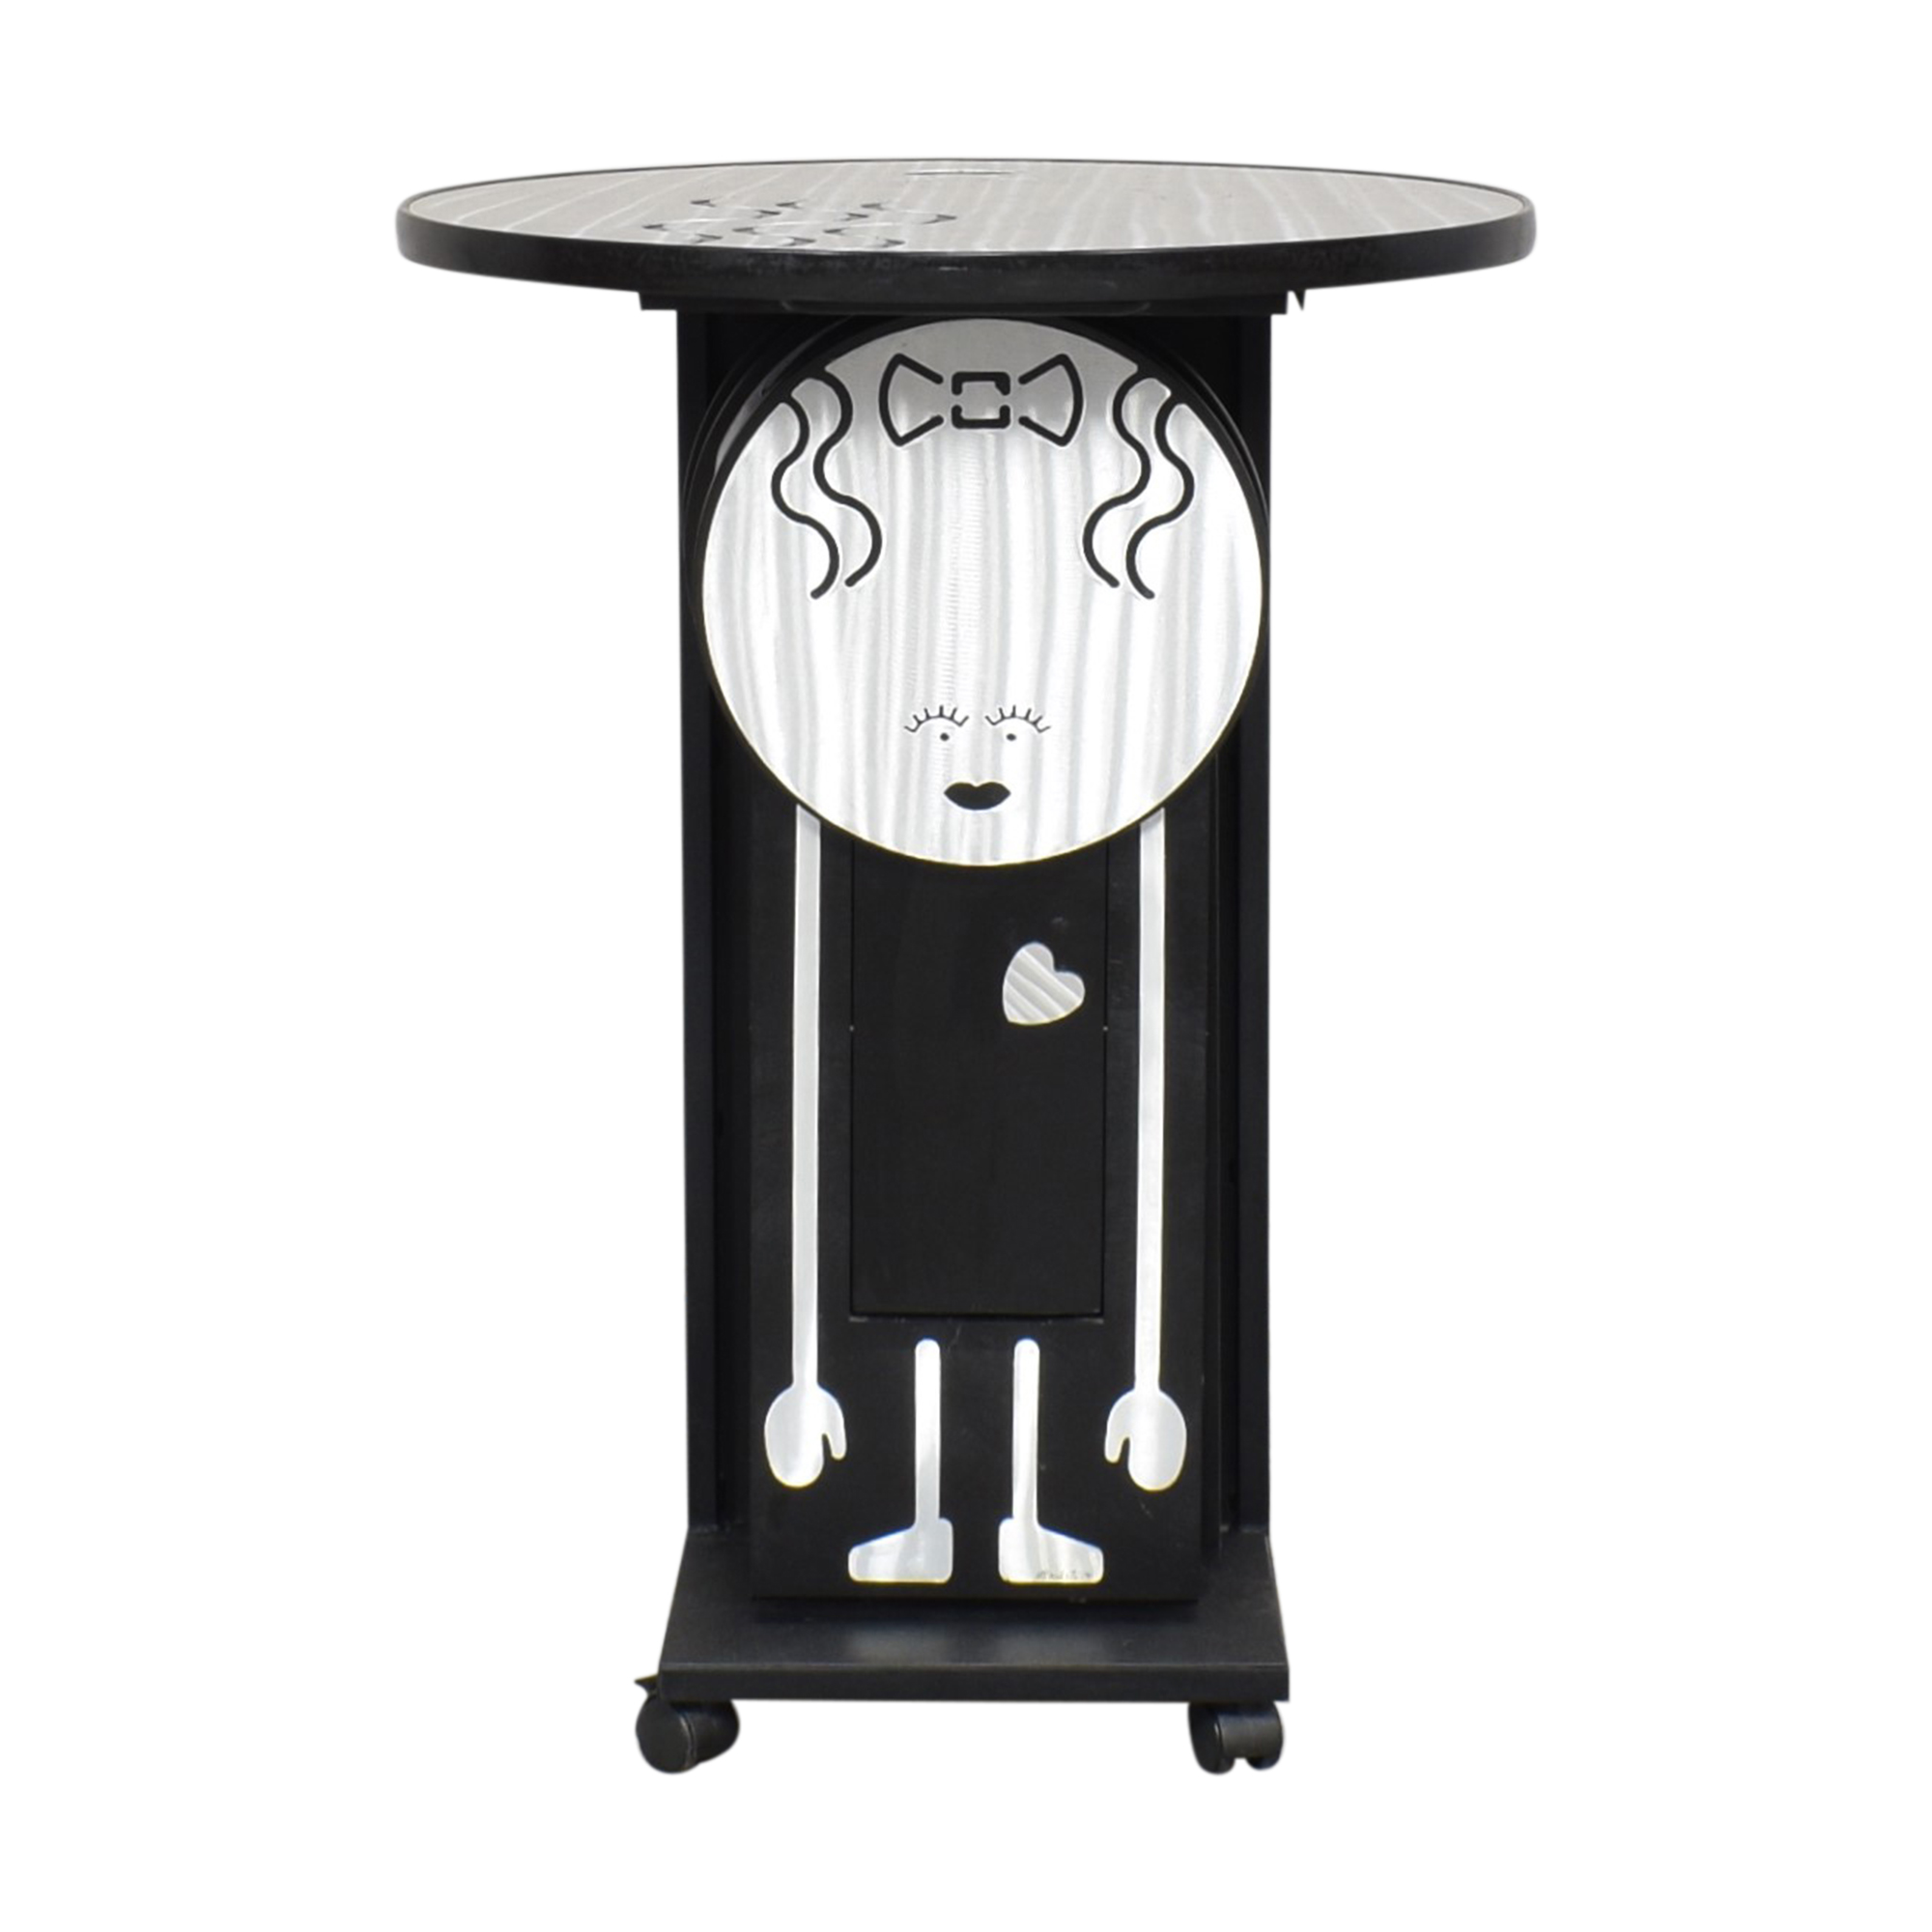 Rockledge Designs Rockledge Designs by Fred Garbotz Bistro Table with Stools discount